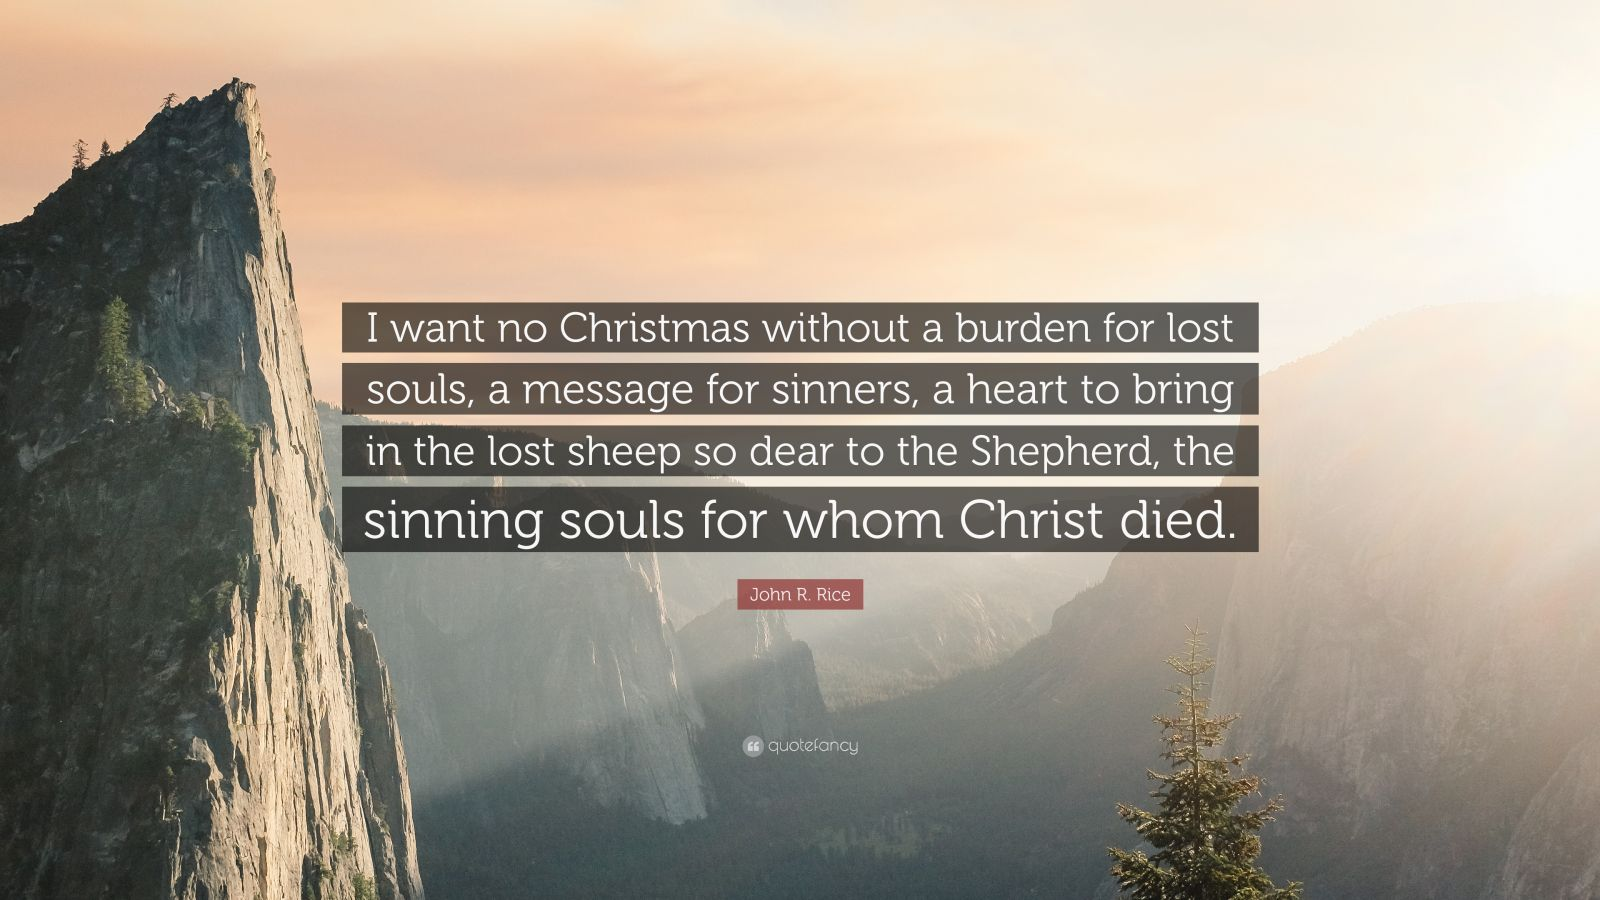 """John R. Rice Quote: """"I want no Christmas without a burden for lost souls, a message for sinners, a heart to bring in the lost sheep so dear to the Shepherd, the sinning souls for whom Christ died."""""""